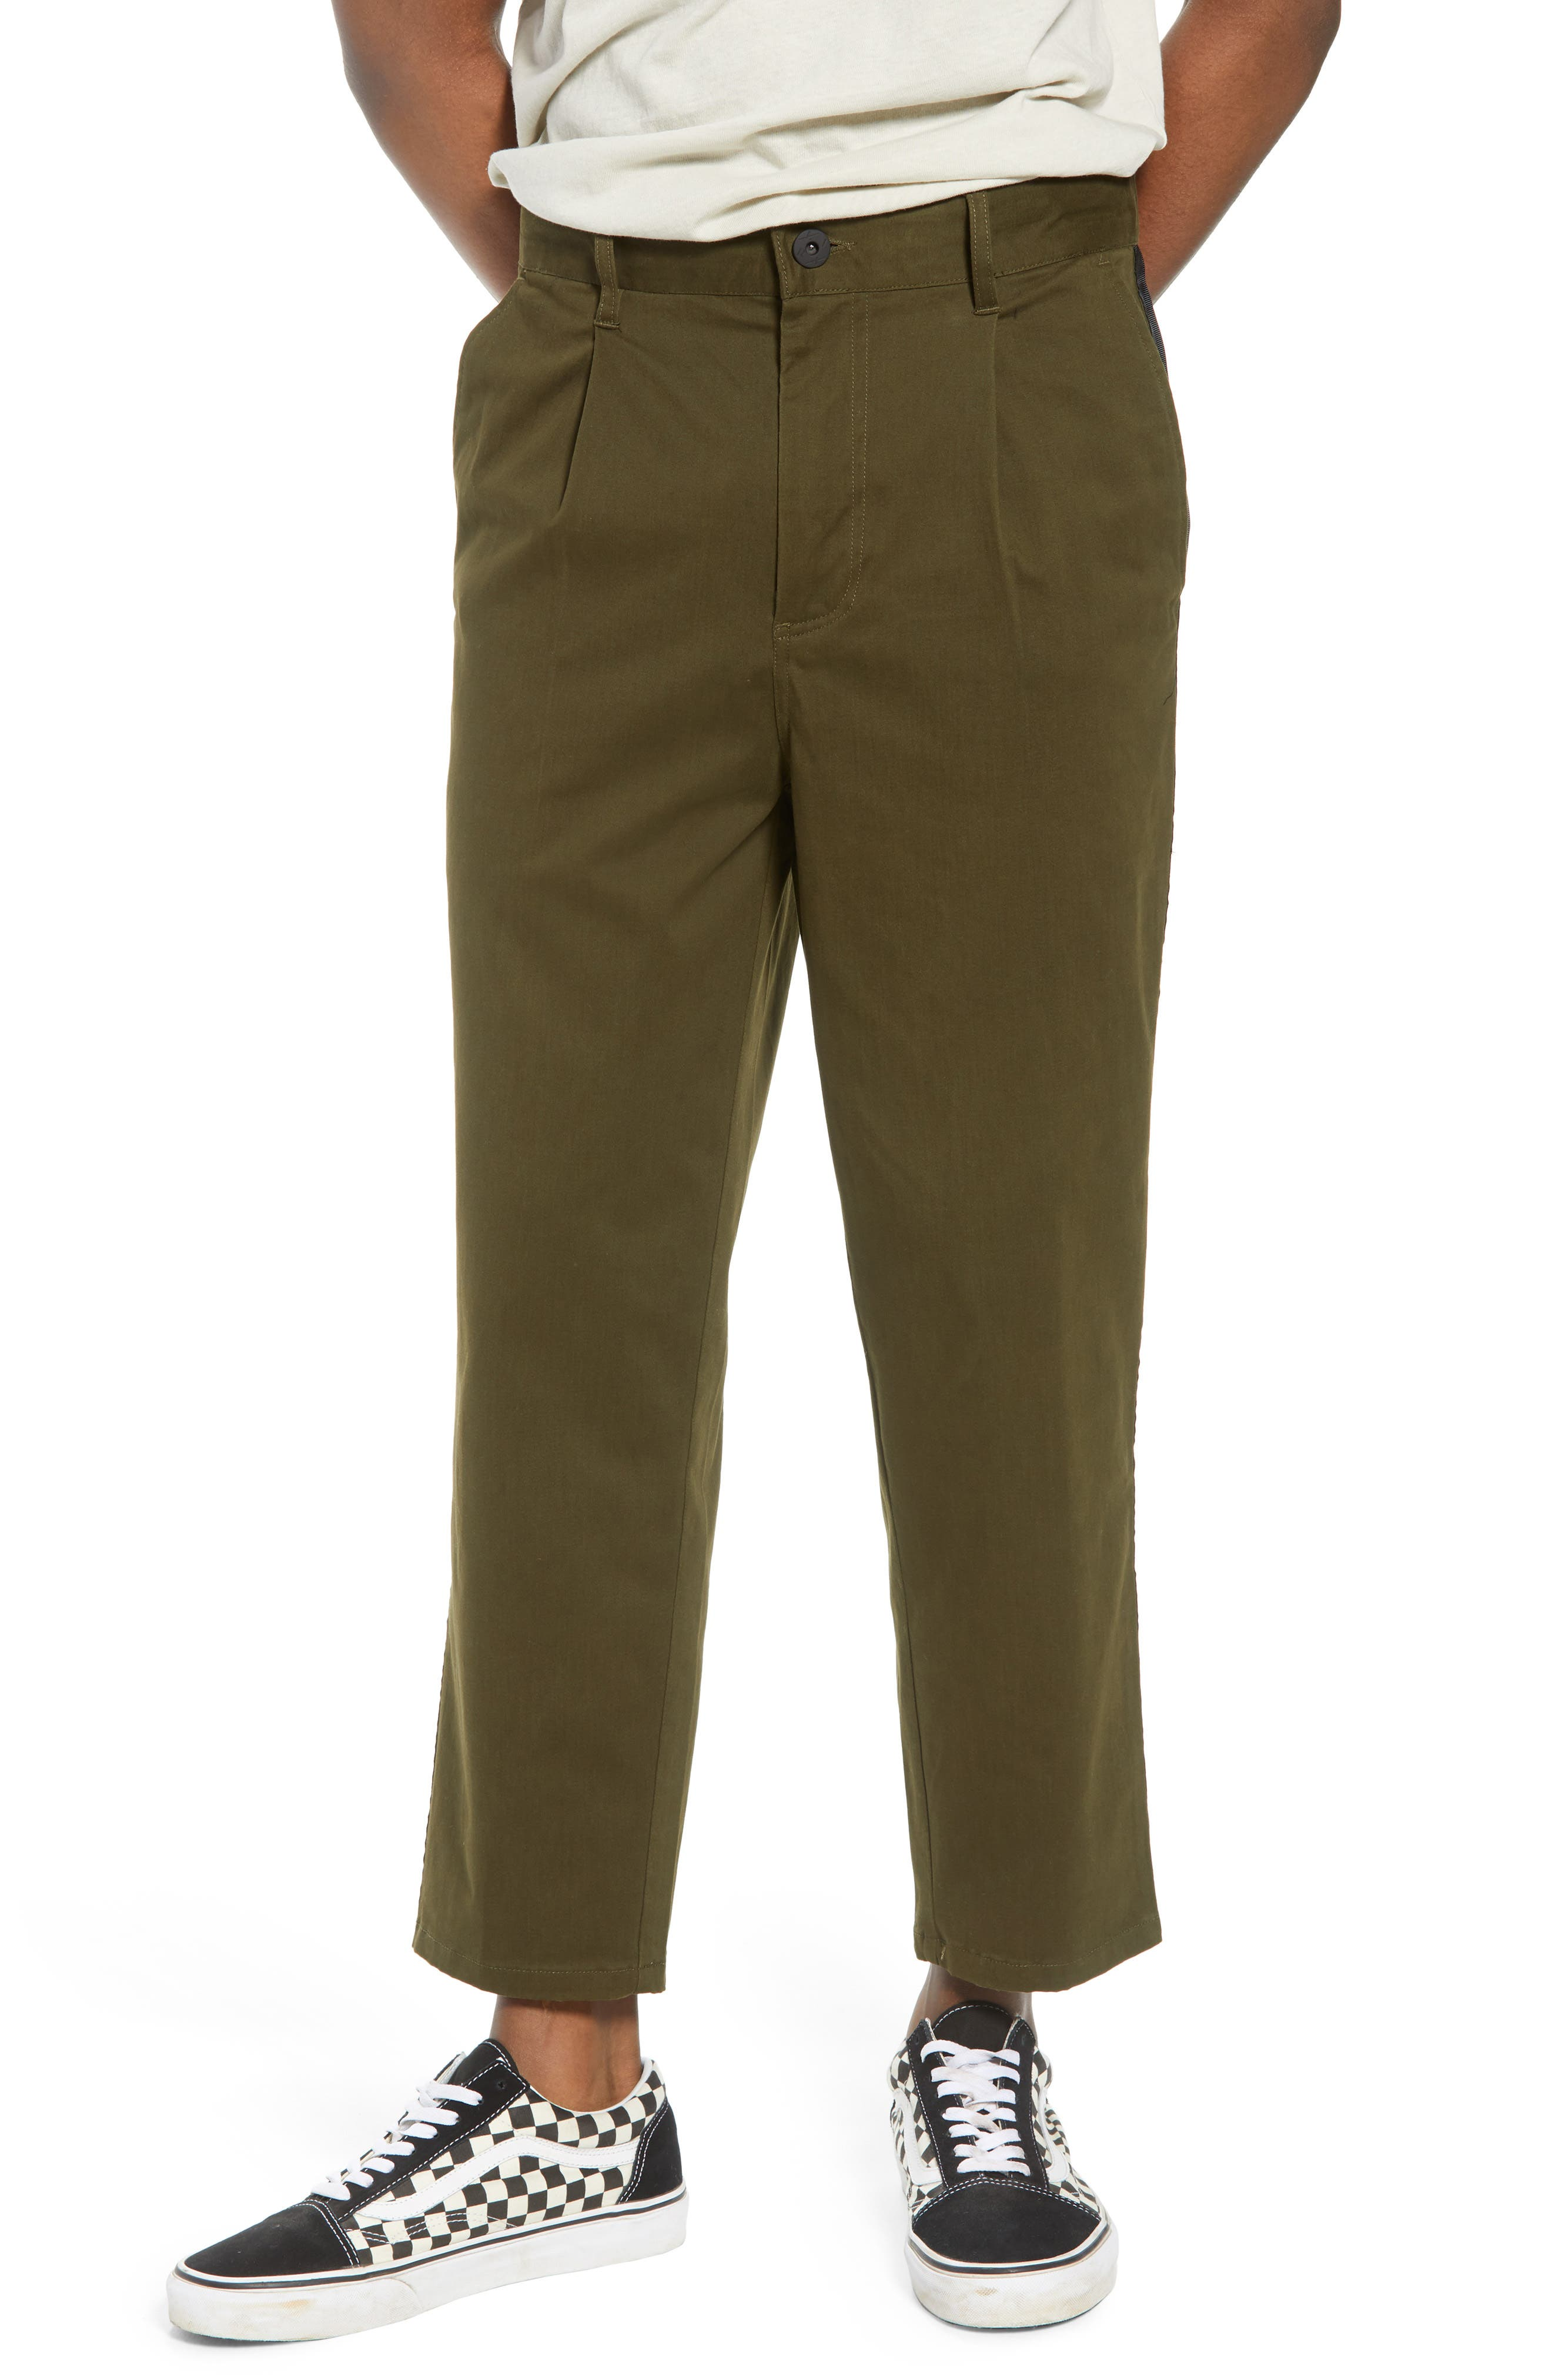 Lincoln Relaxed Fit Pants,                         Main,                         color, 300